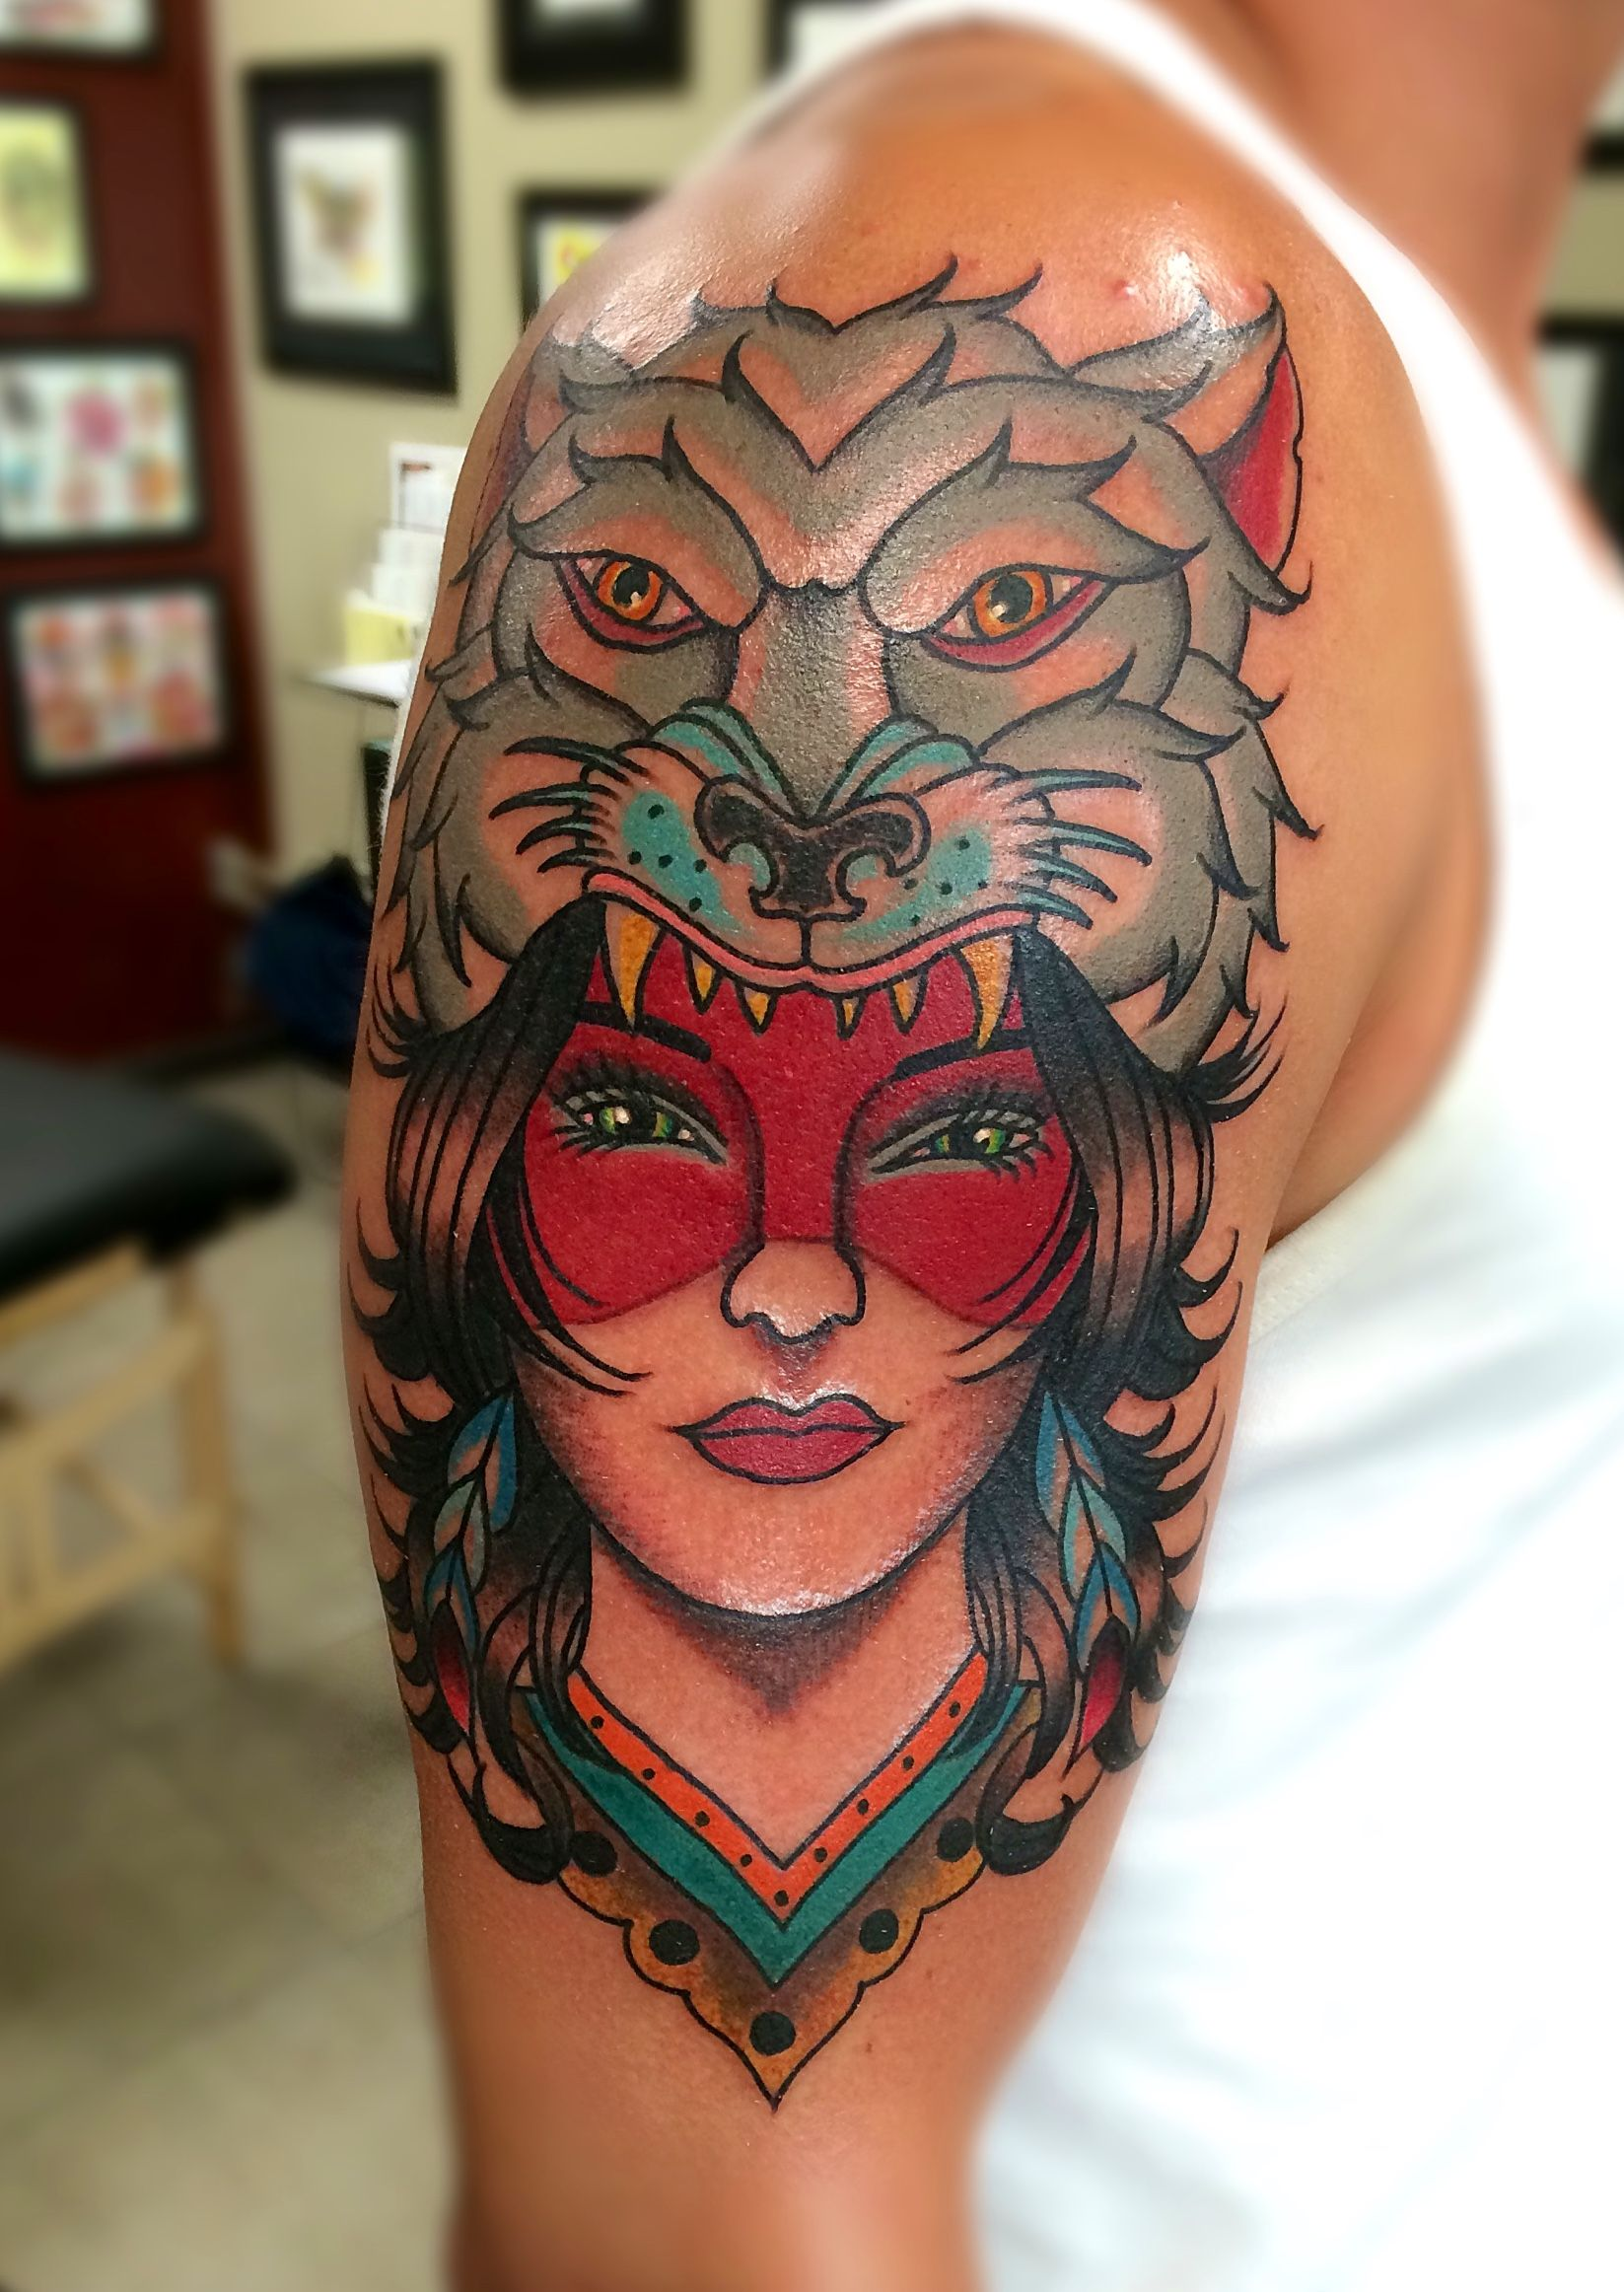 Bright Bold Colorful Tattoos Traditional Traditional Tattoo Color Tattoo Polynesian Tattoo